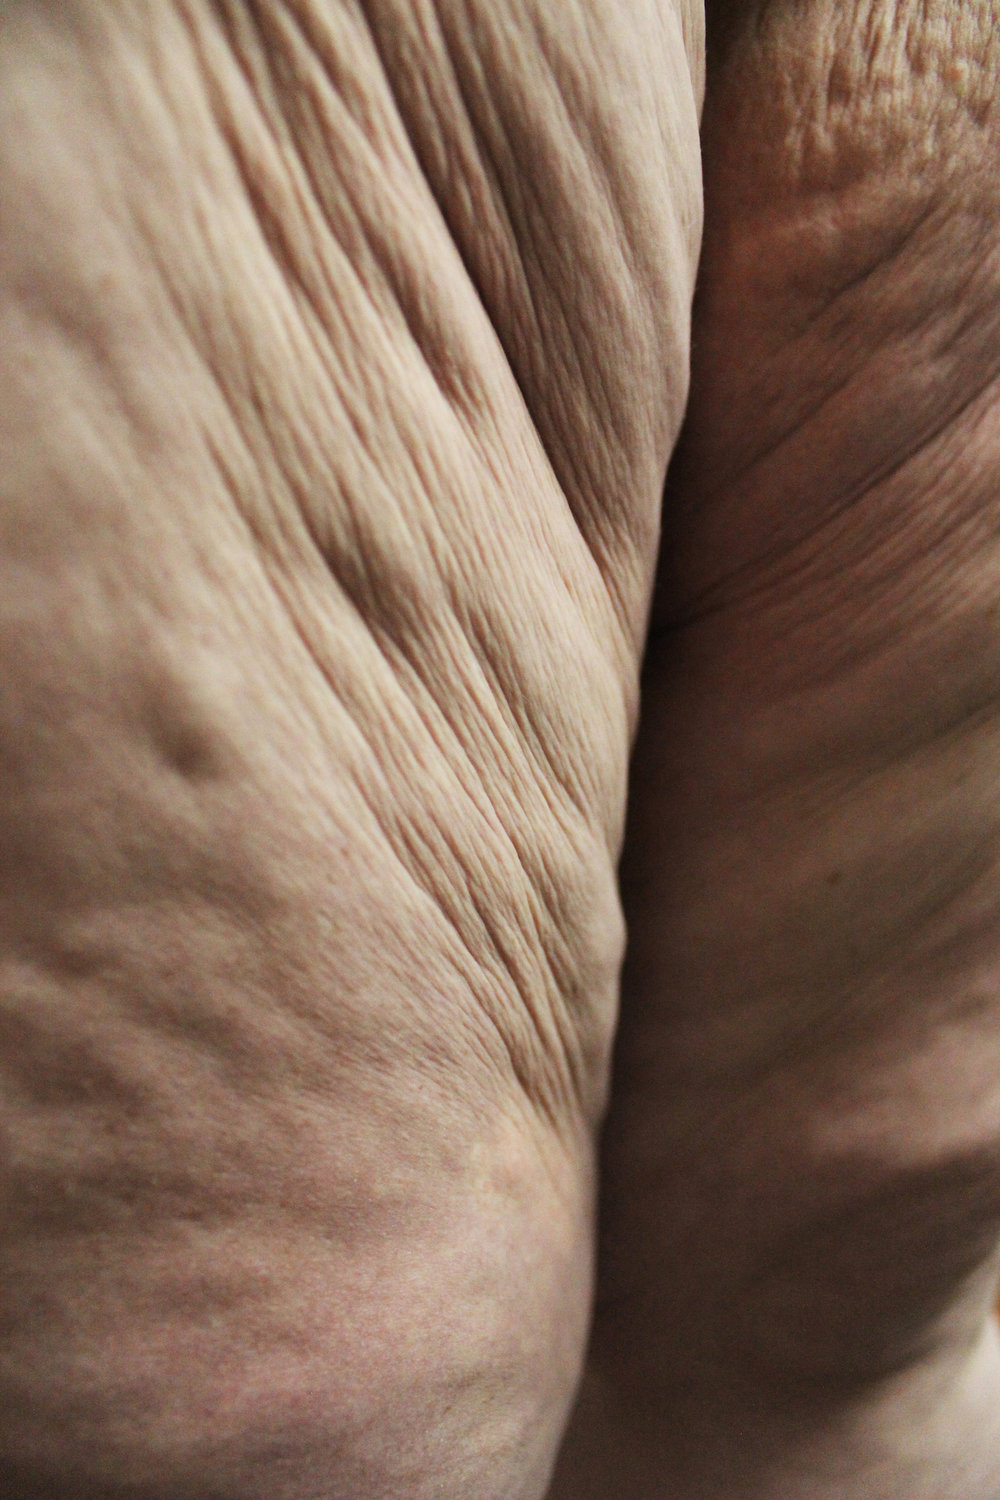 Laura Nash, Body Landscape 6, 2017, Photograph